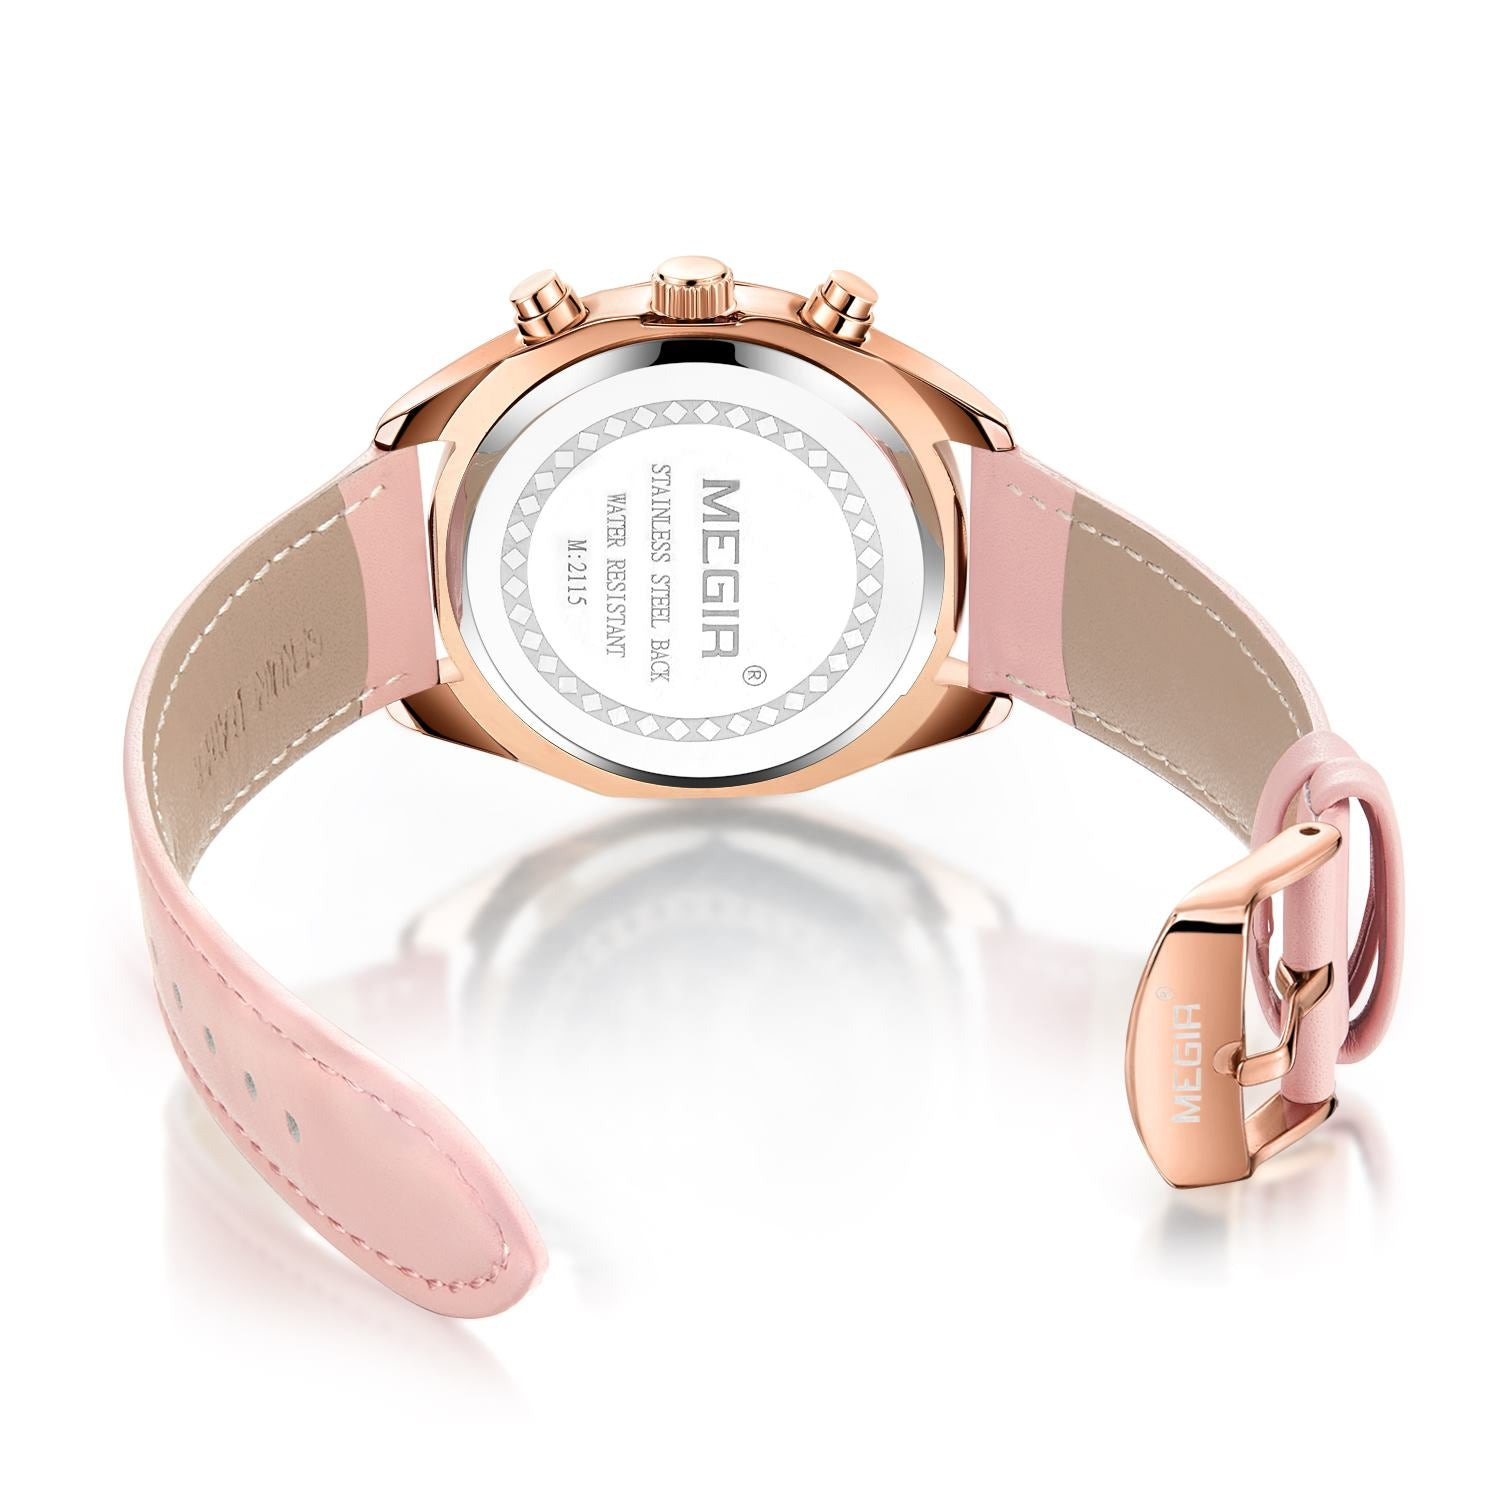 MEGIR Women's Watches Fashion Pink Leather for Women, 2115 - MEGIR